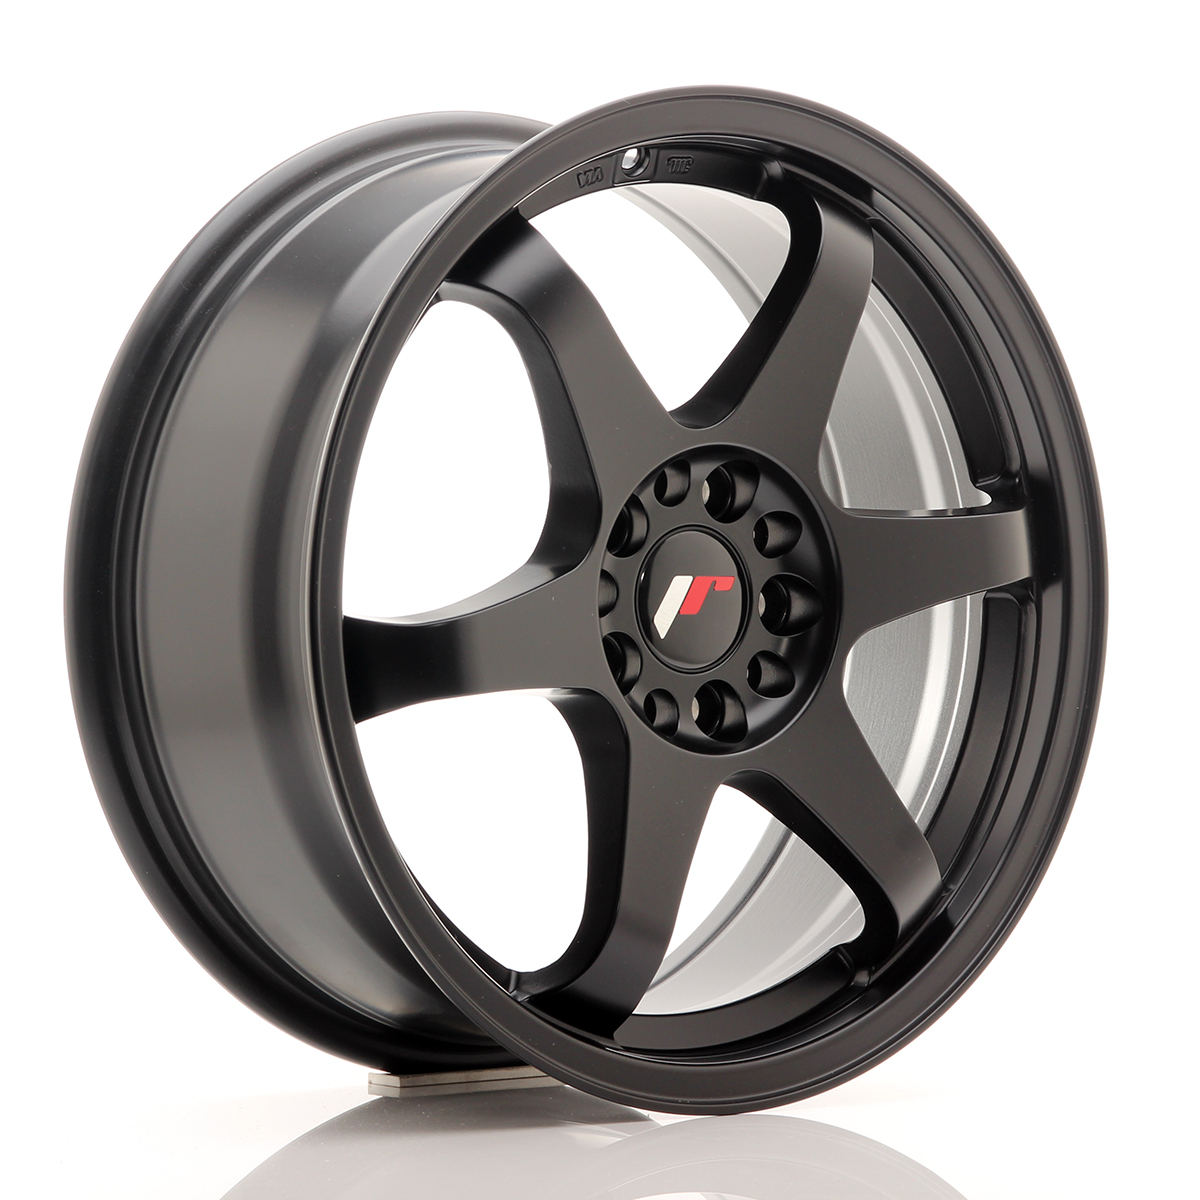 Japan Racing JR Wheels JR3 17x8' ET35 5x108 5x112 Black